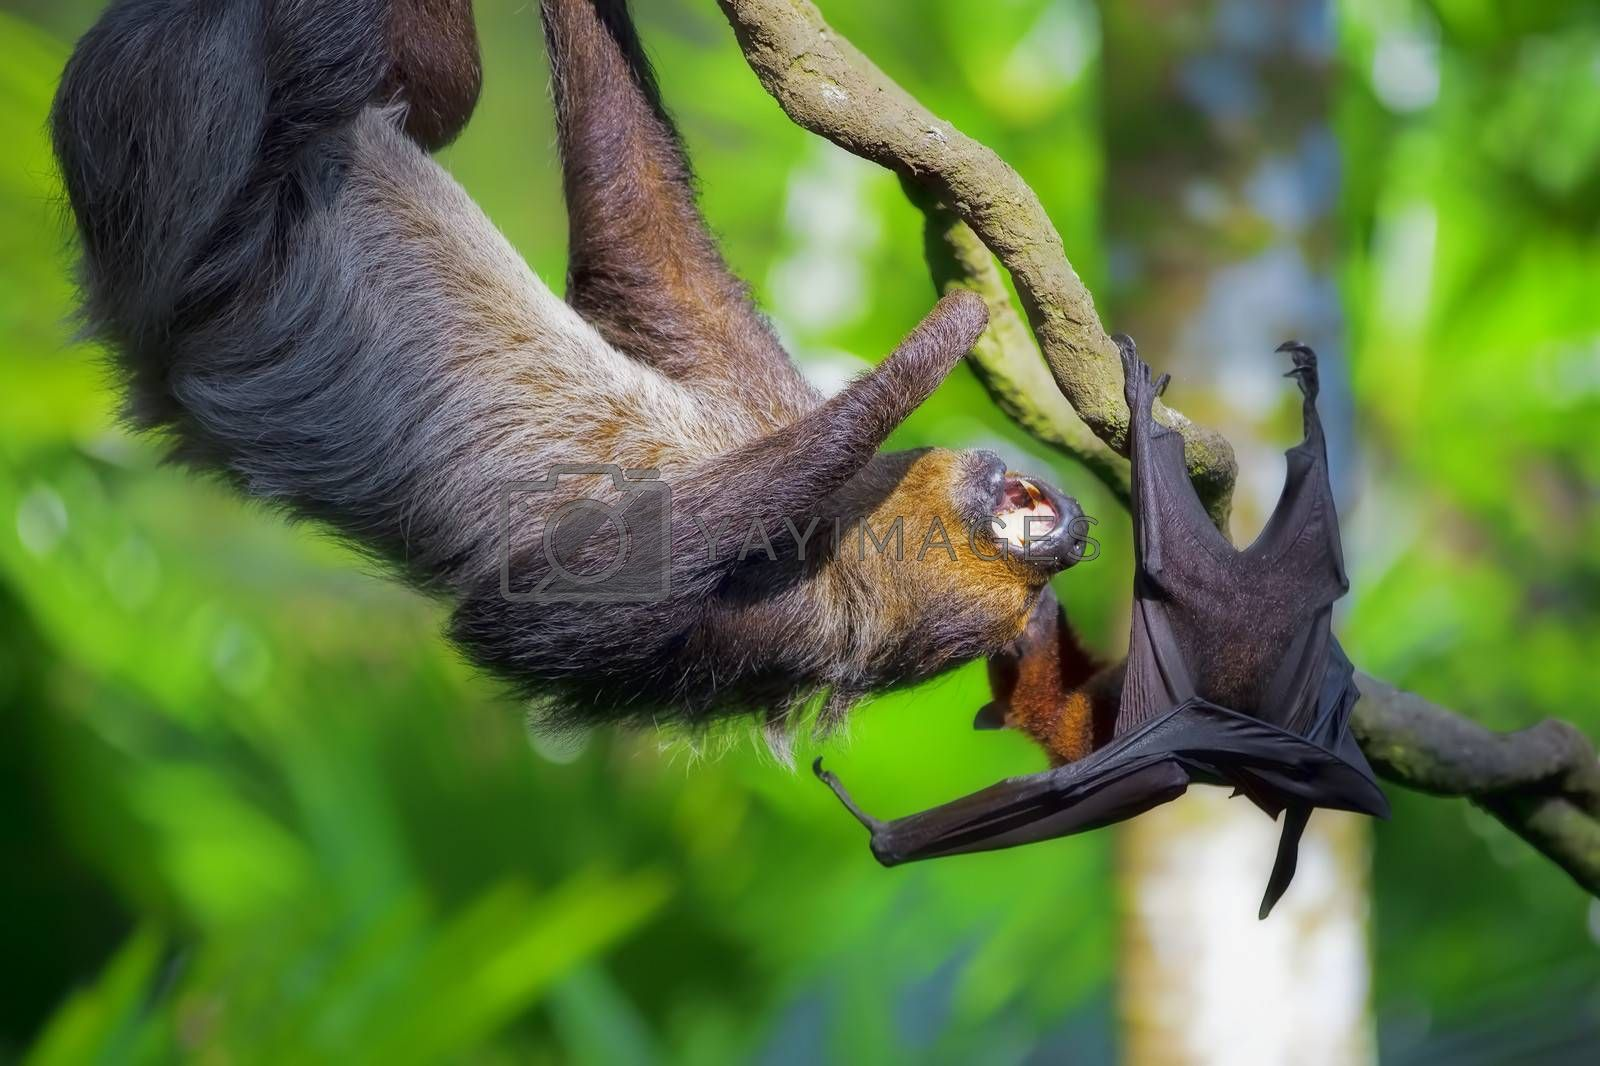 A Two-toed Sloth and flying fox in Manuel Antonio national park